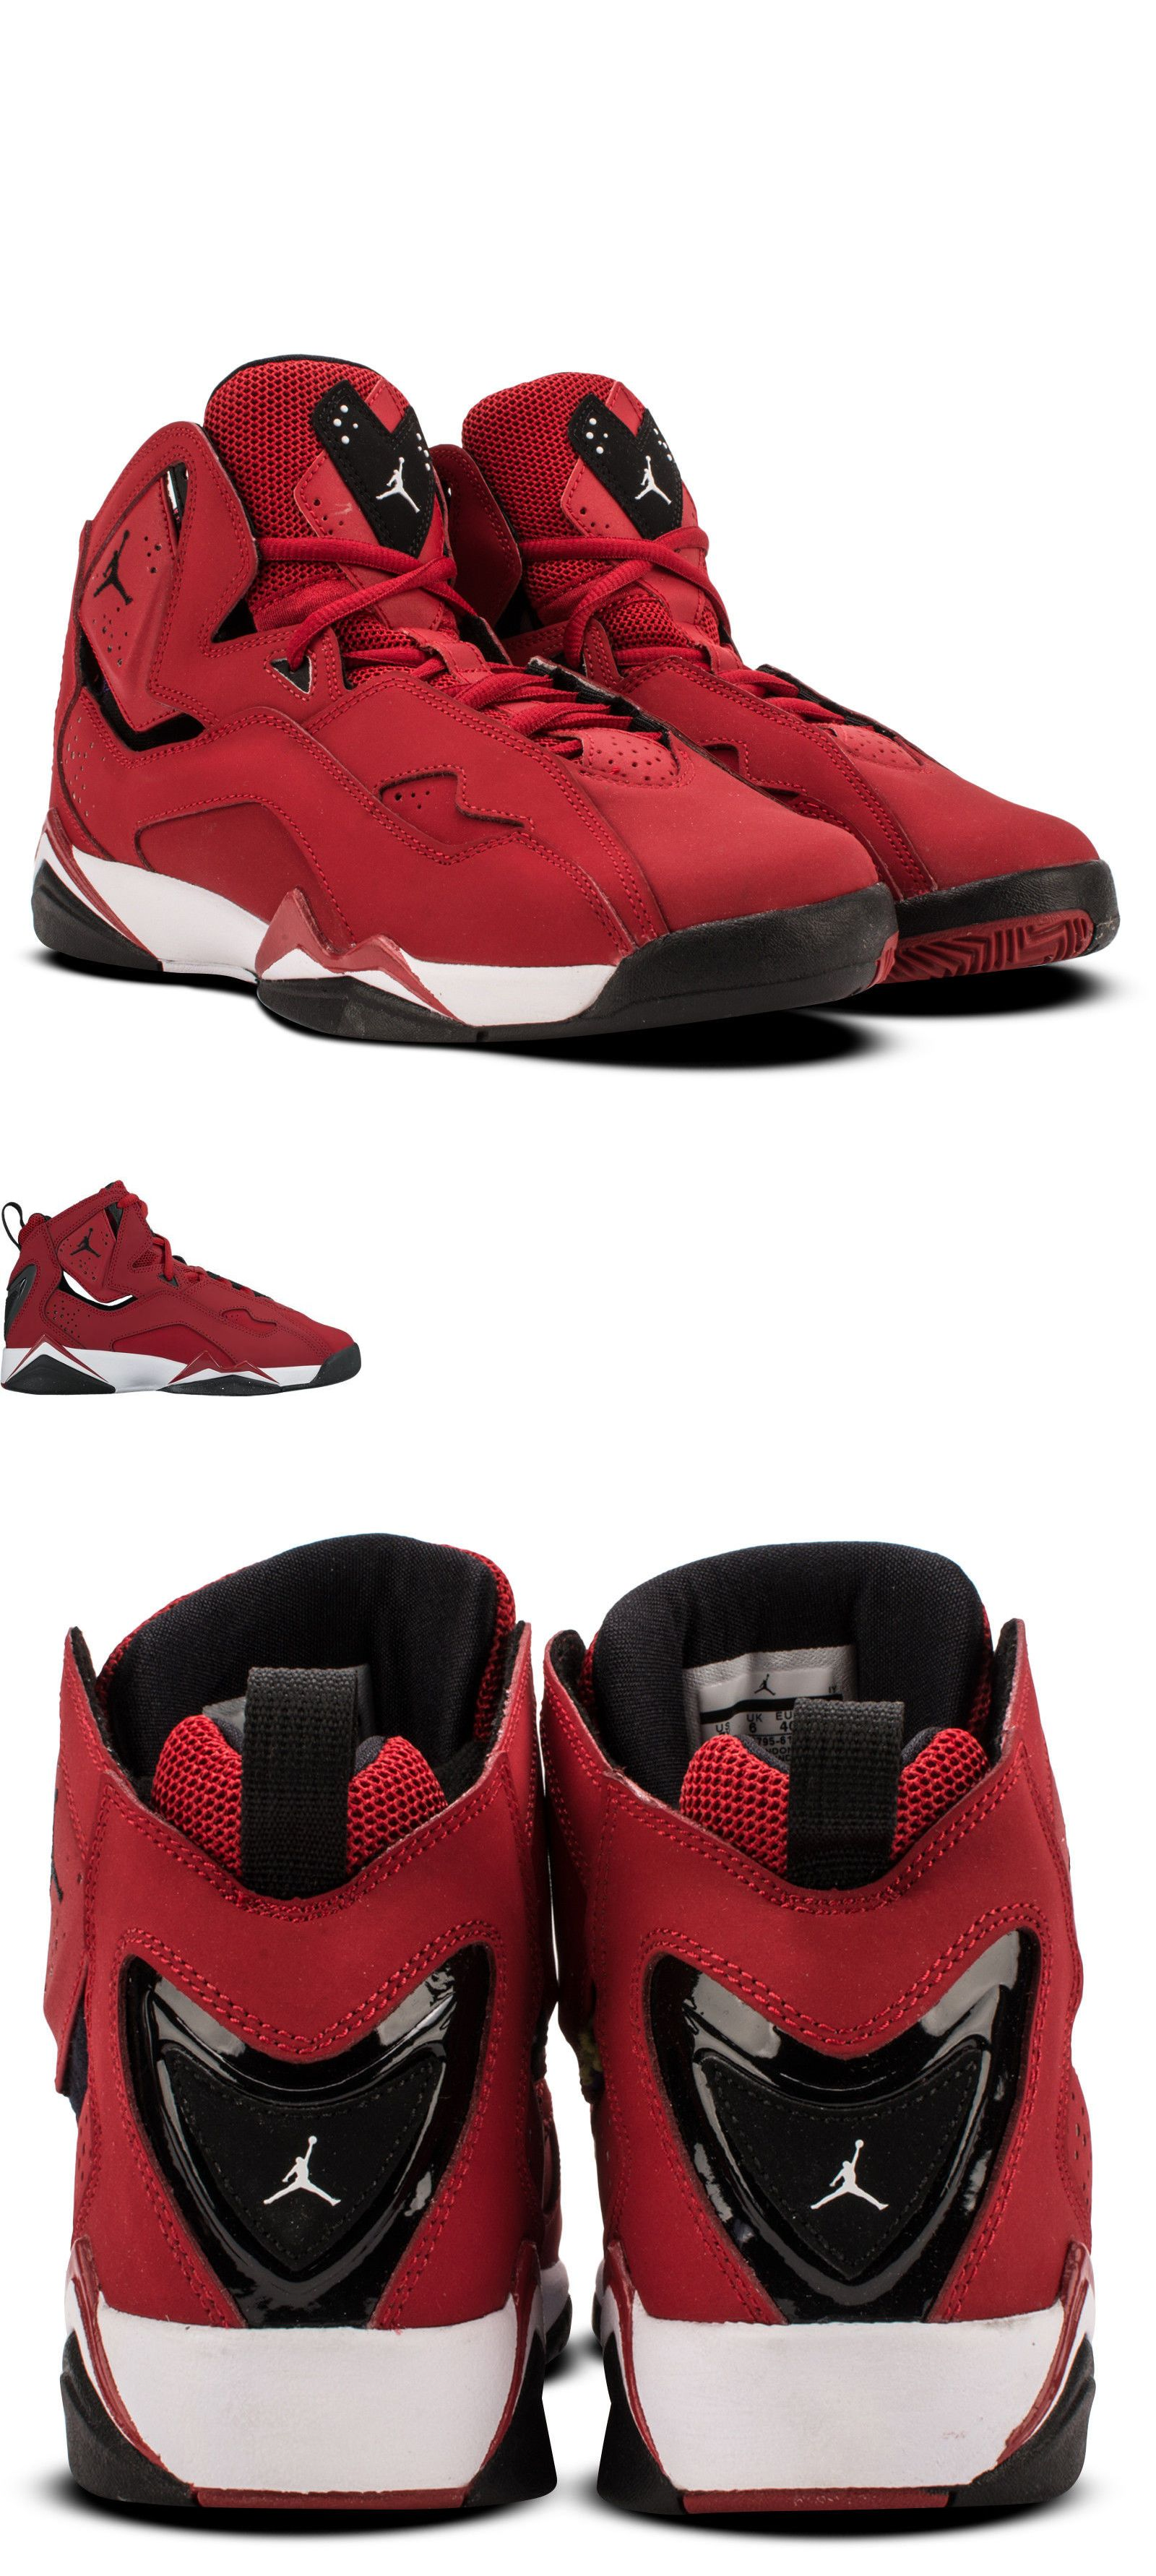 super popular cbae6 bc57f Unisex Shoes 155202  Air Jordan True Flight Gs Gym Red Us Youth Grade  School Sizes 343795-610 -  BUY IT NOW ONLY   69.99 on eBay!